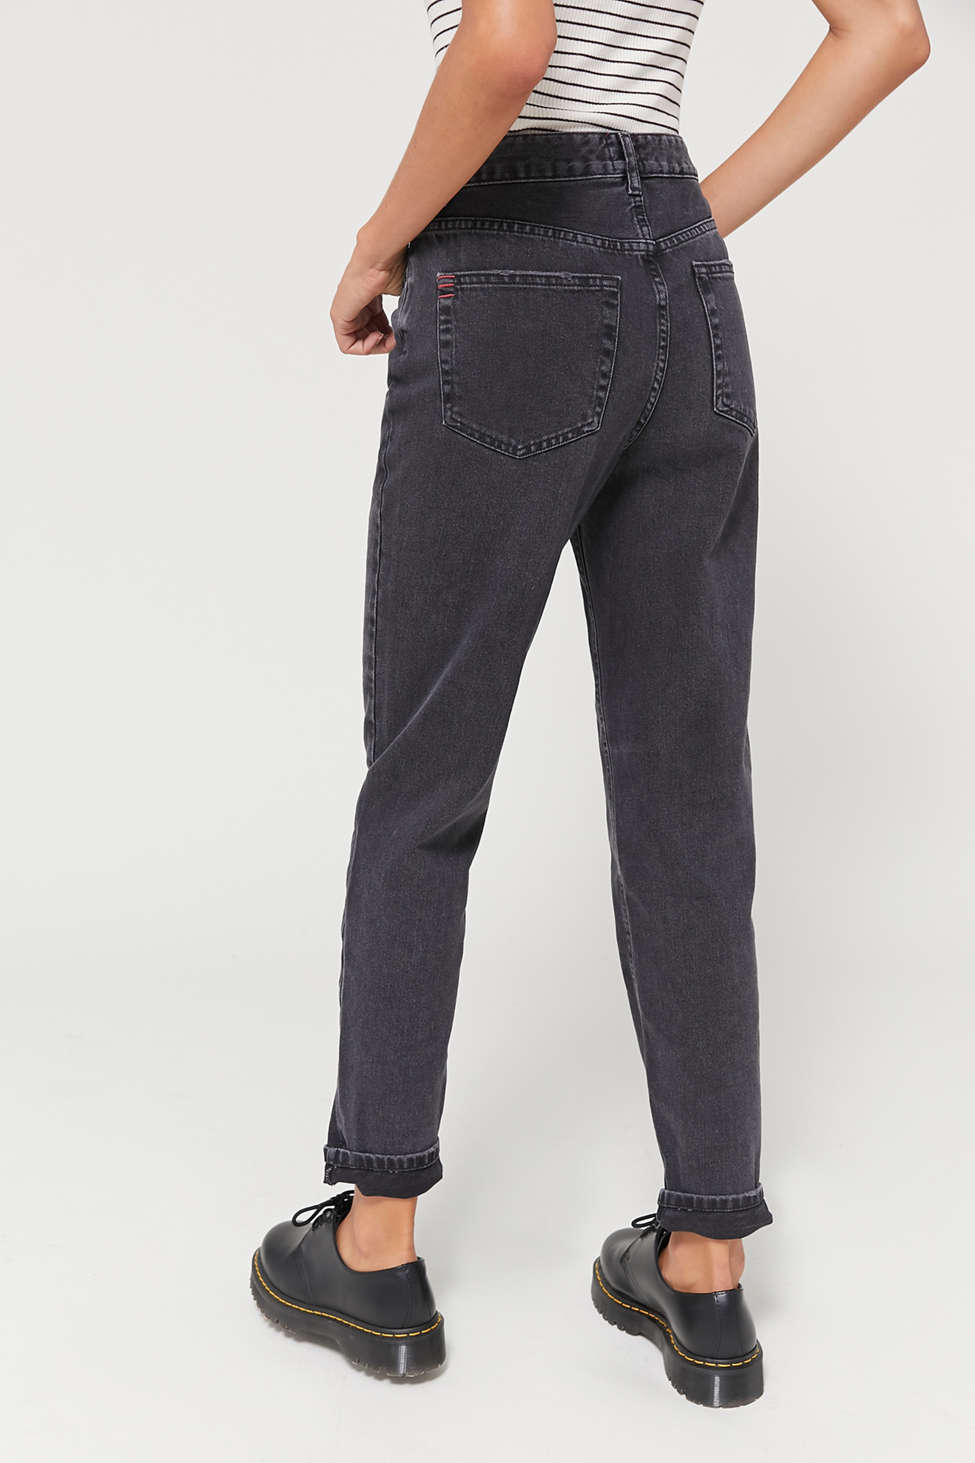 BDG High-Waisted Mom Jean – Washed Black Denim | Urban Outfitters